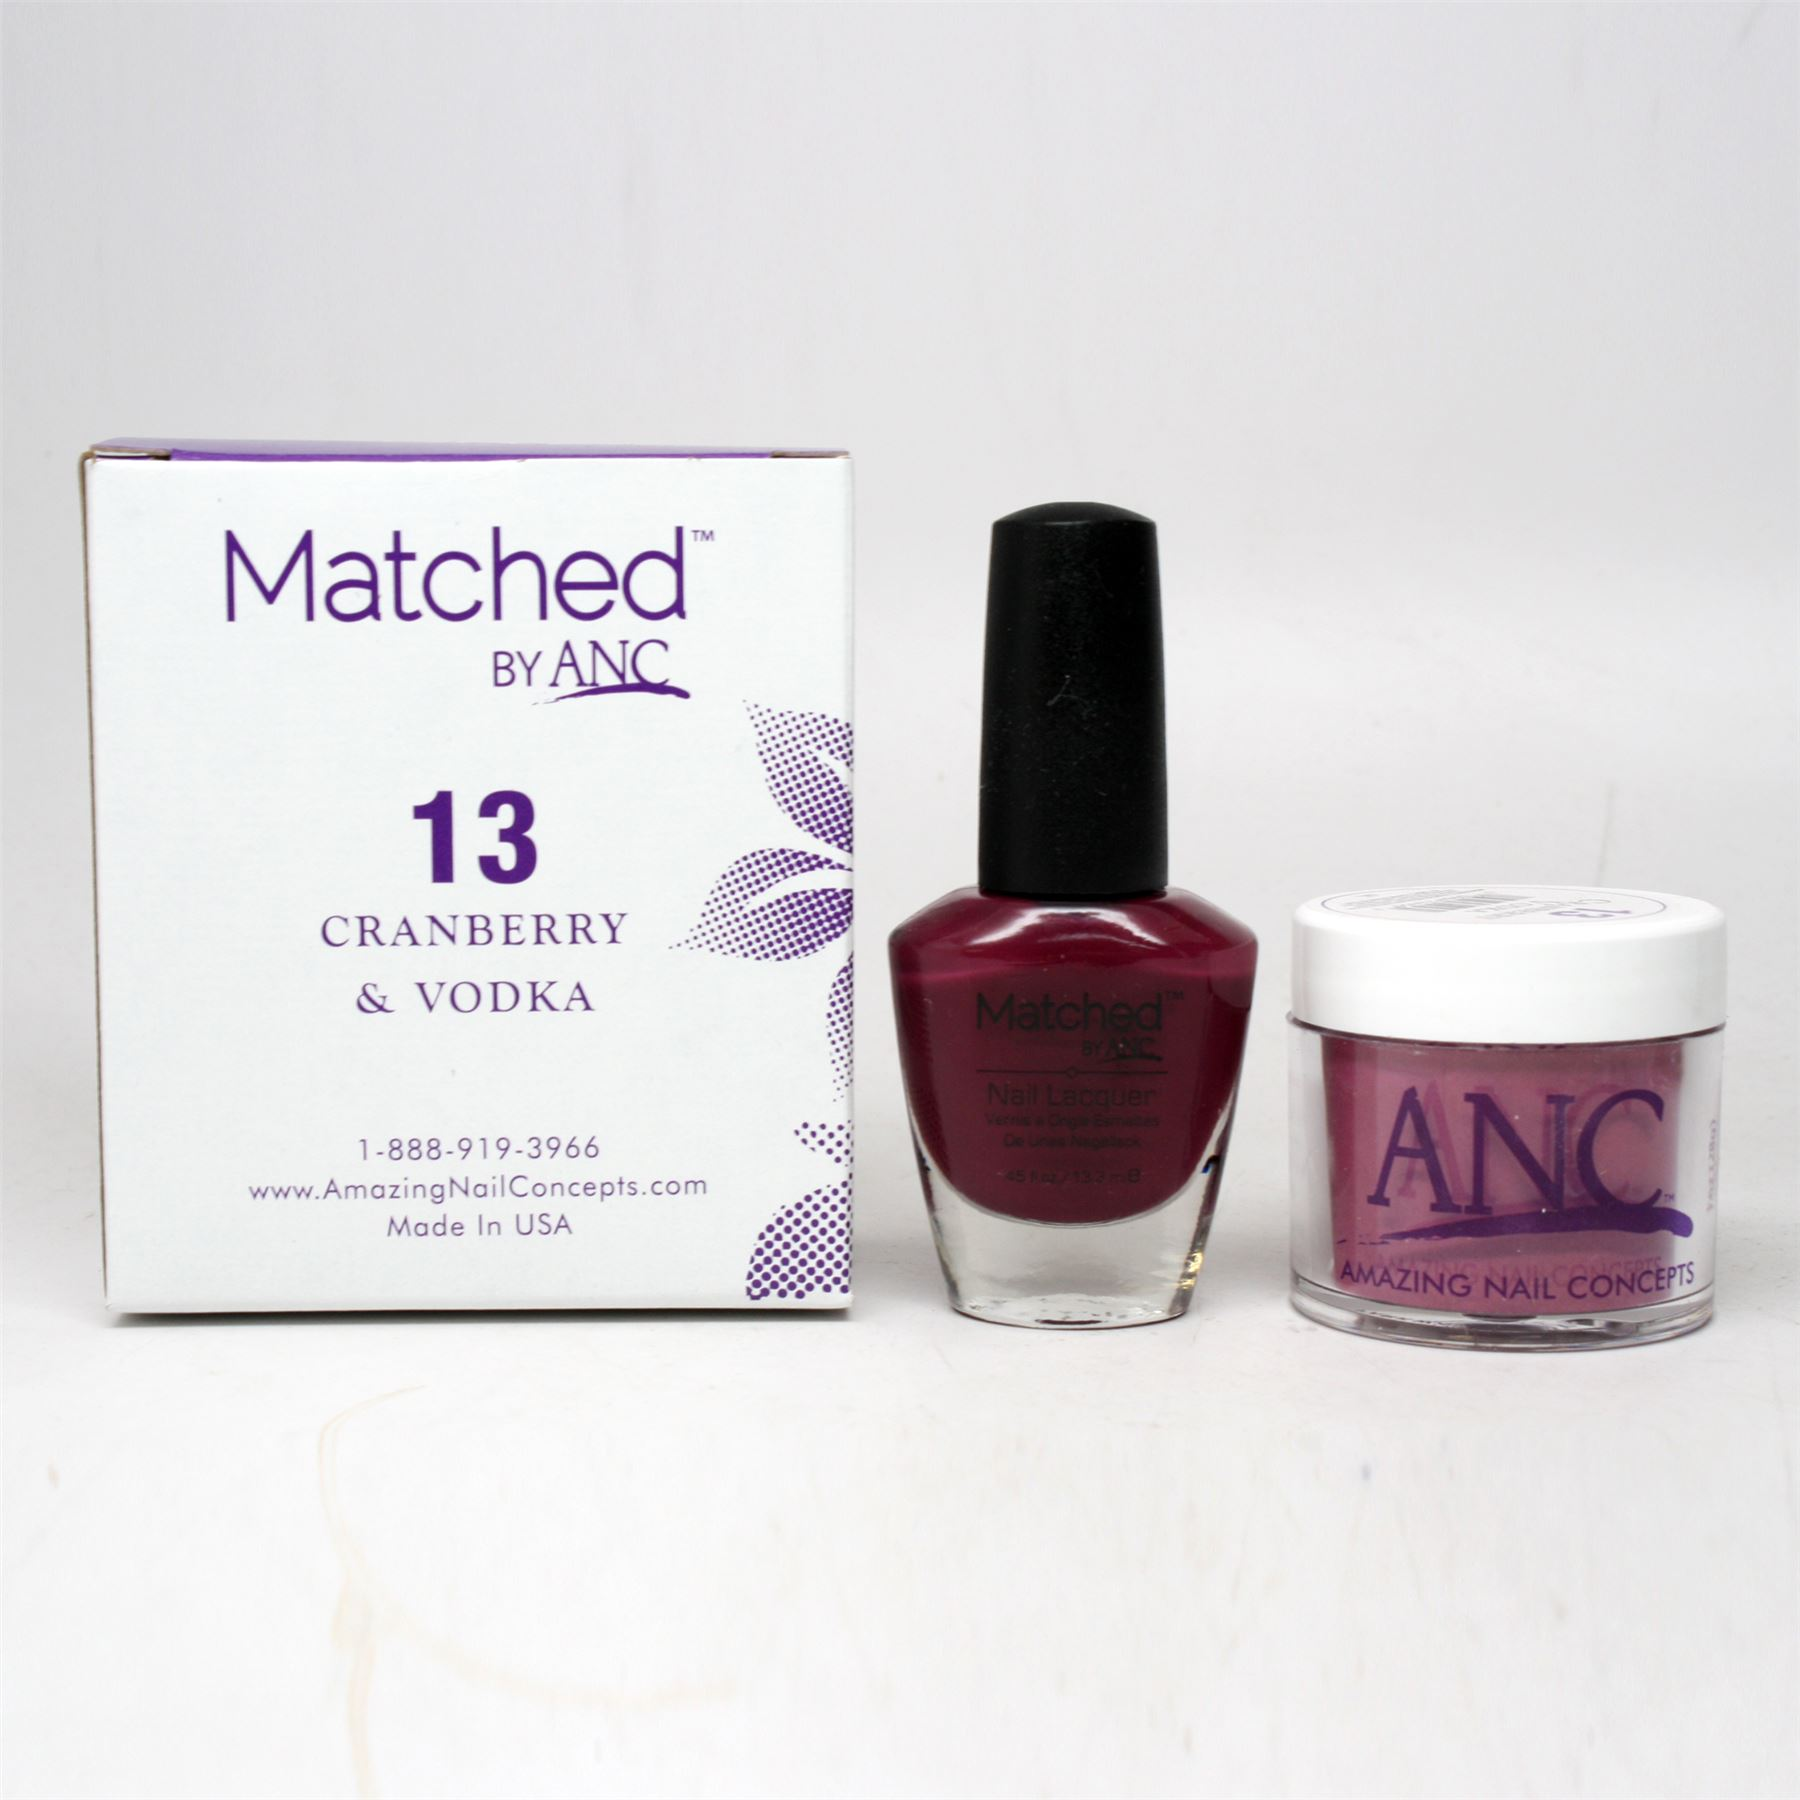 ANC Amazing Nail Concepts Matched Kit # 13 Cranberry